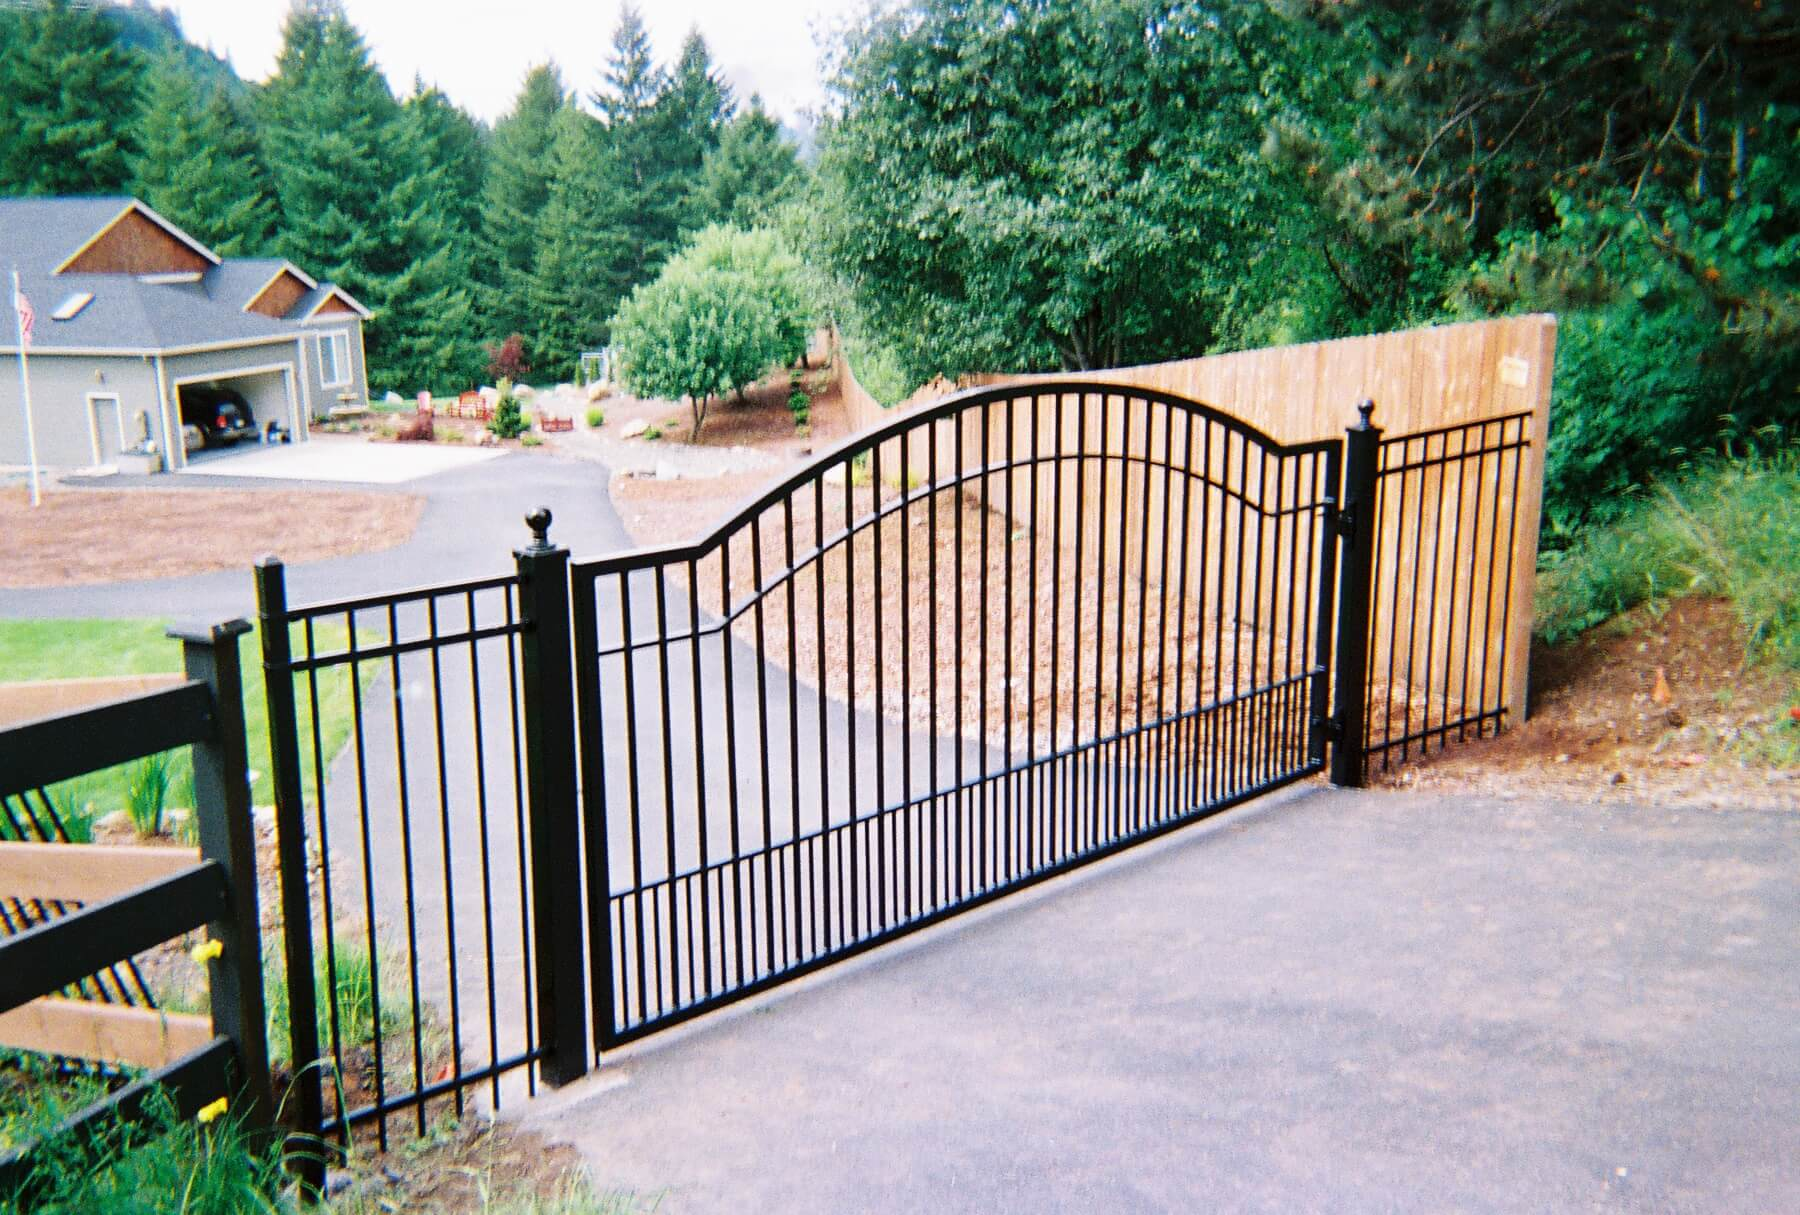 Custom Ornamental Access Gate Available. Contact Vancouver Washington's Best Fence Builders. Providing the best in all your fence needs for over 35 years. Call: 360-254-2299 today